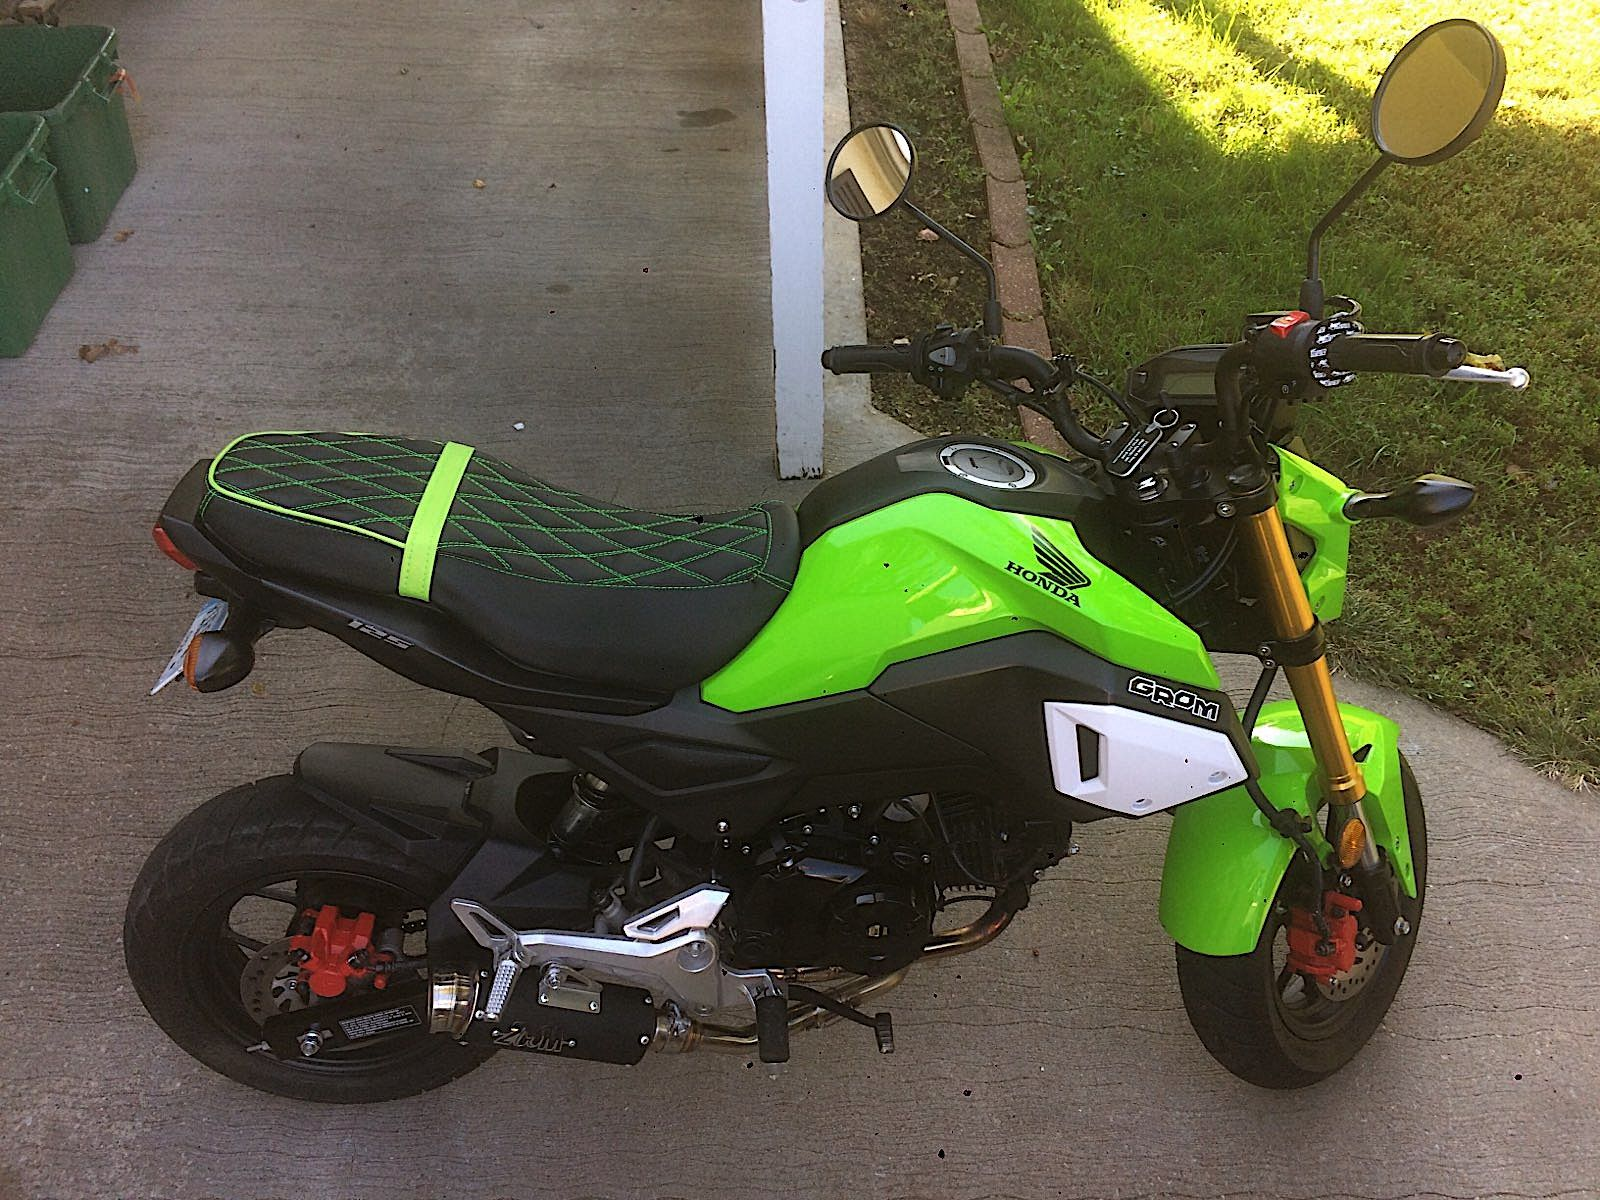 Honda Grom Seat Cover Msx125 2013 2019 Diamond Stitch With Bright Green Accents Honda Grom Bright Green Green Accents